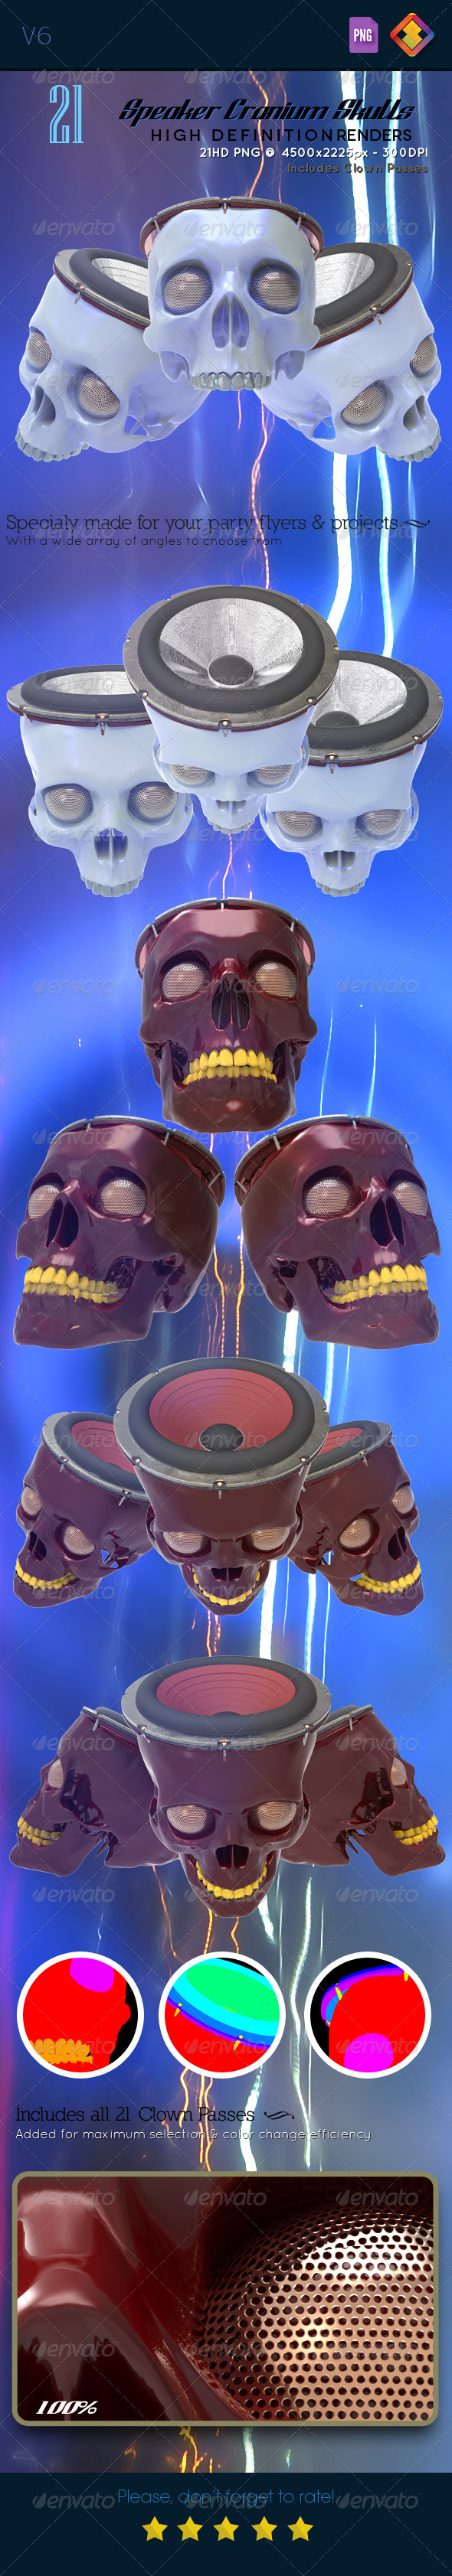 Speaker Cranium Skull V6 - Technology 3D Renders